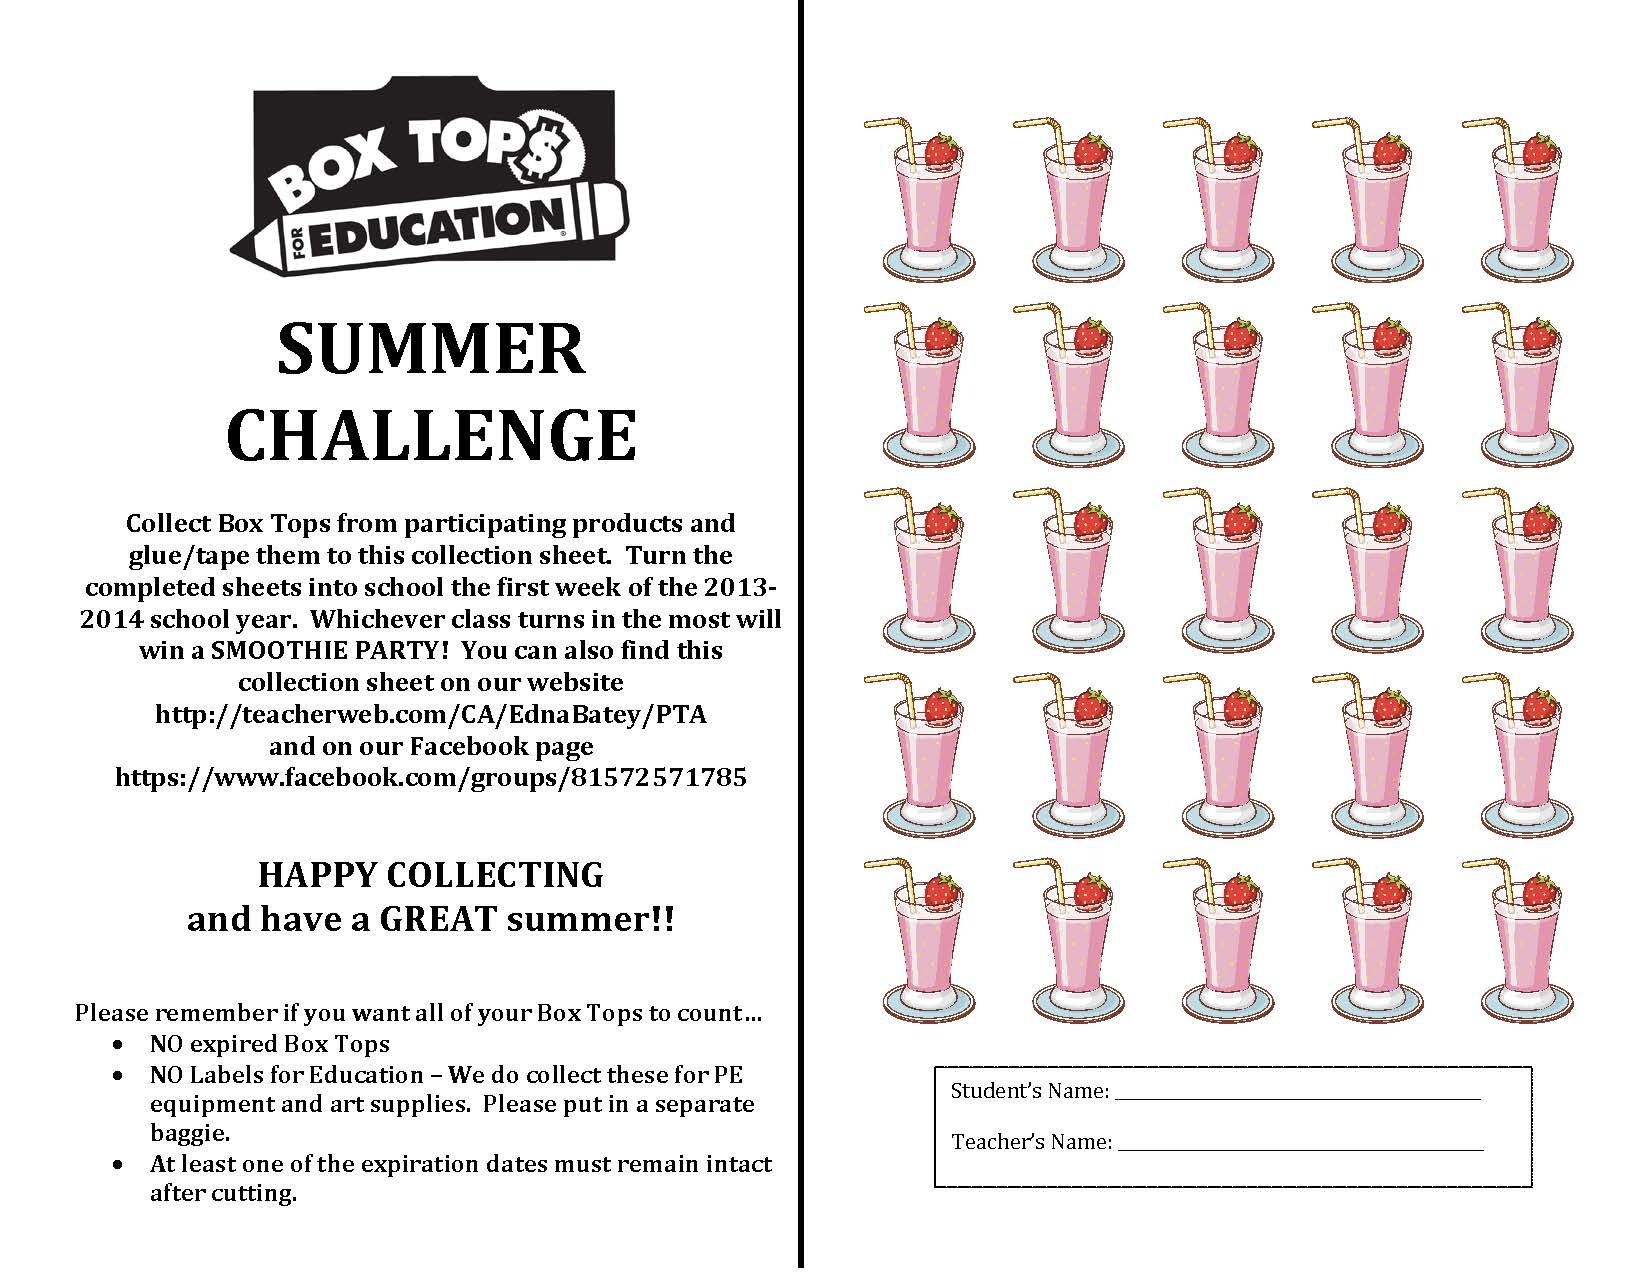 Box Tops Summer Challenge Collection Sheet